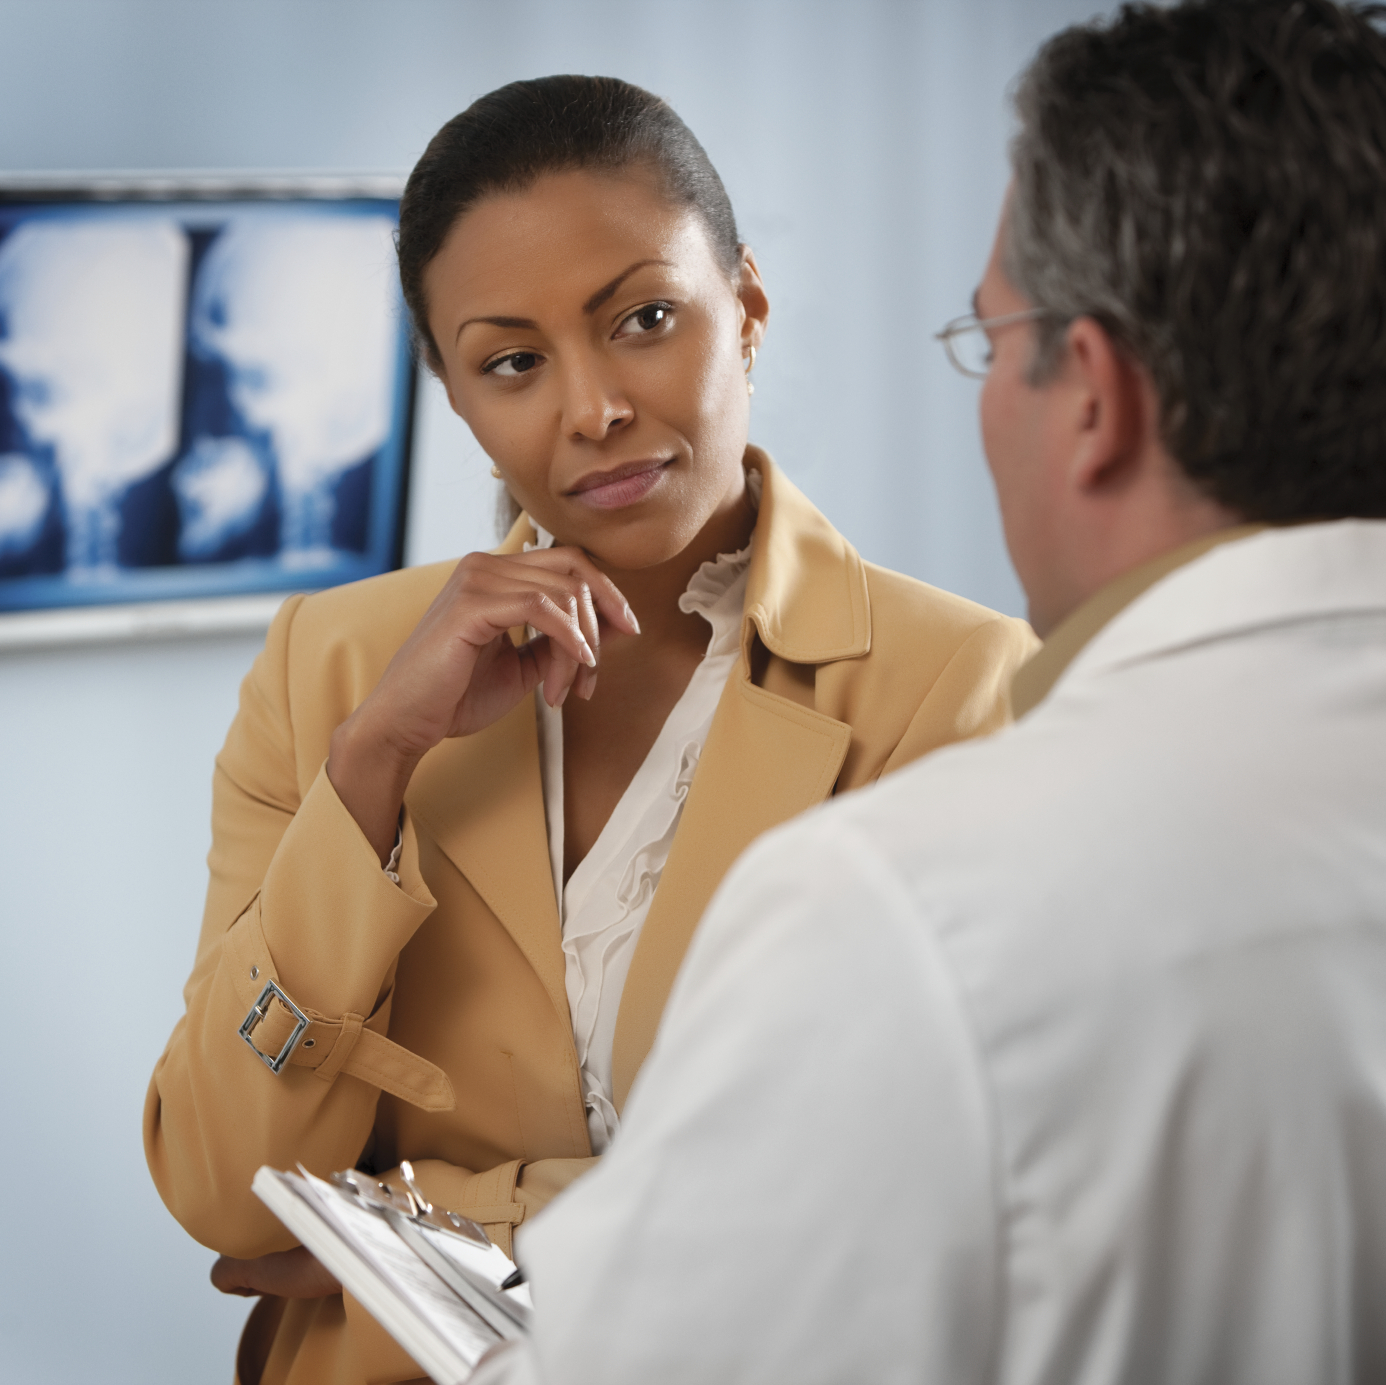 lupus nephritis treatment options